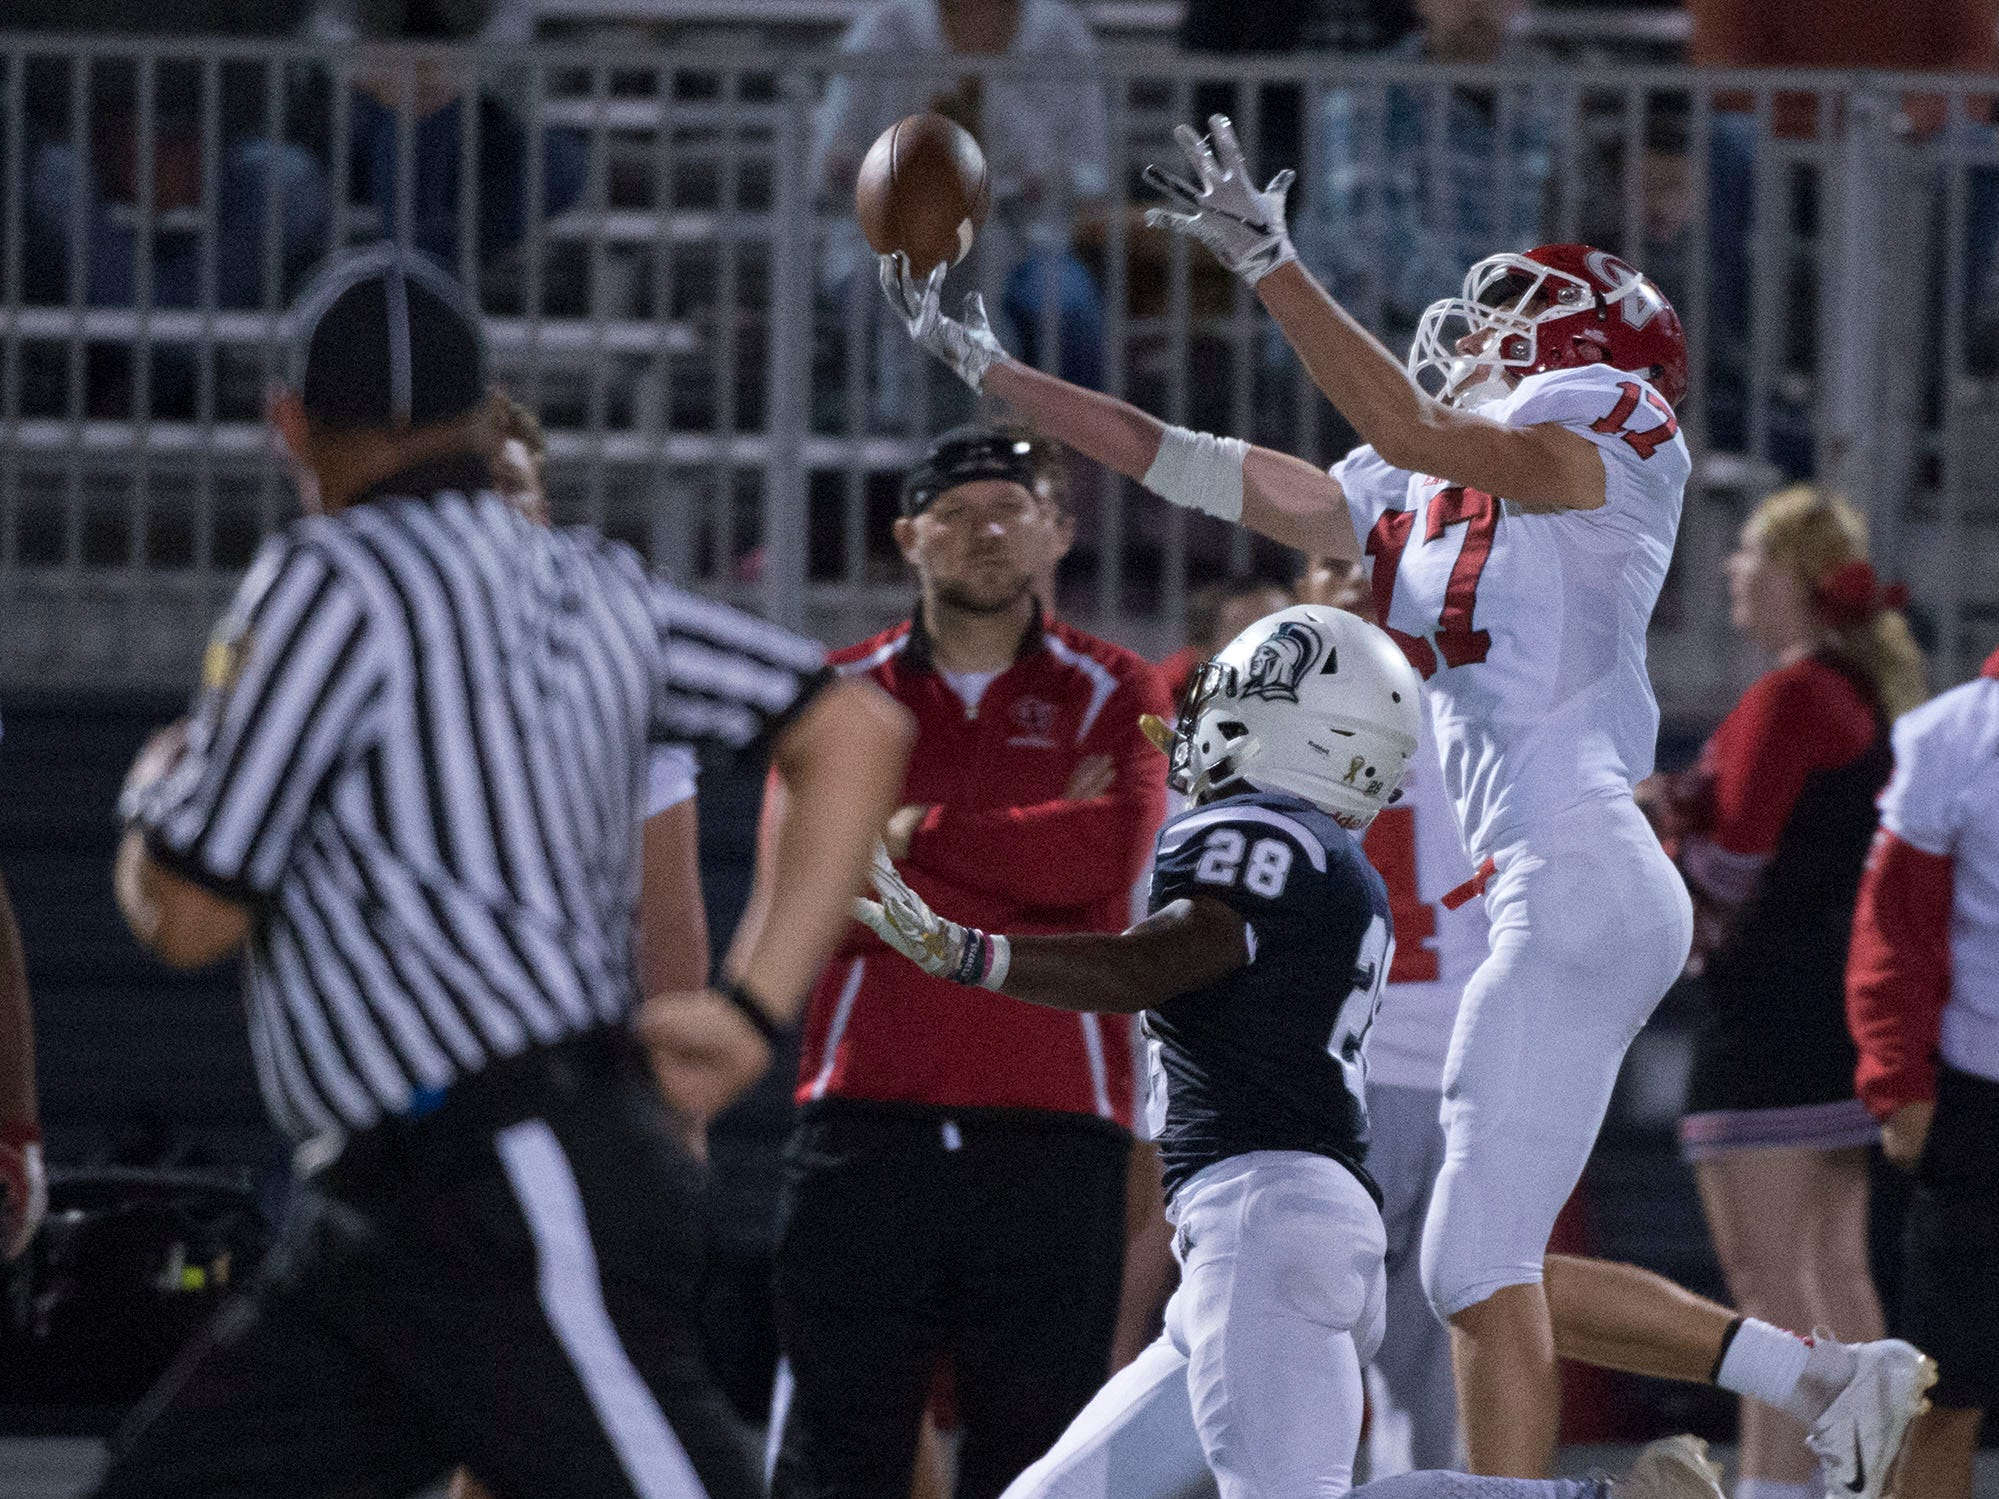 Keyshawn Jones (28) breaks up a pass intended for CV's Logan Ramper (17). Chambersburg Trojans are 5-1 after a homecoming victory over Cumberland Valley 28-14 in PIAA football on Friday, Sept. 28, 2018.